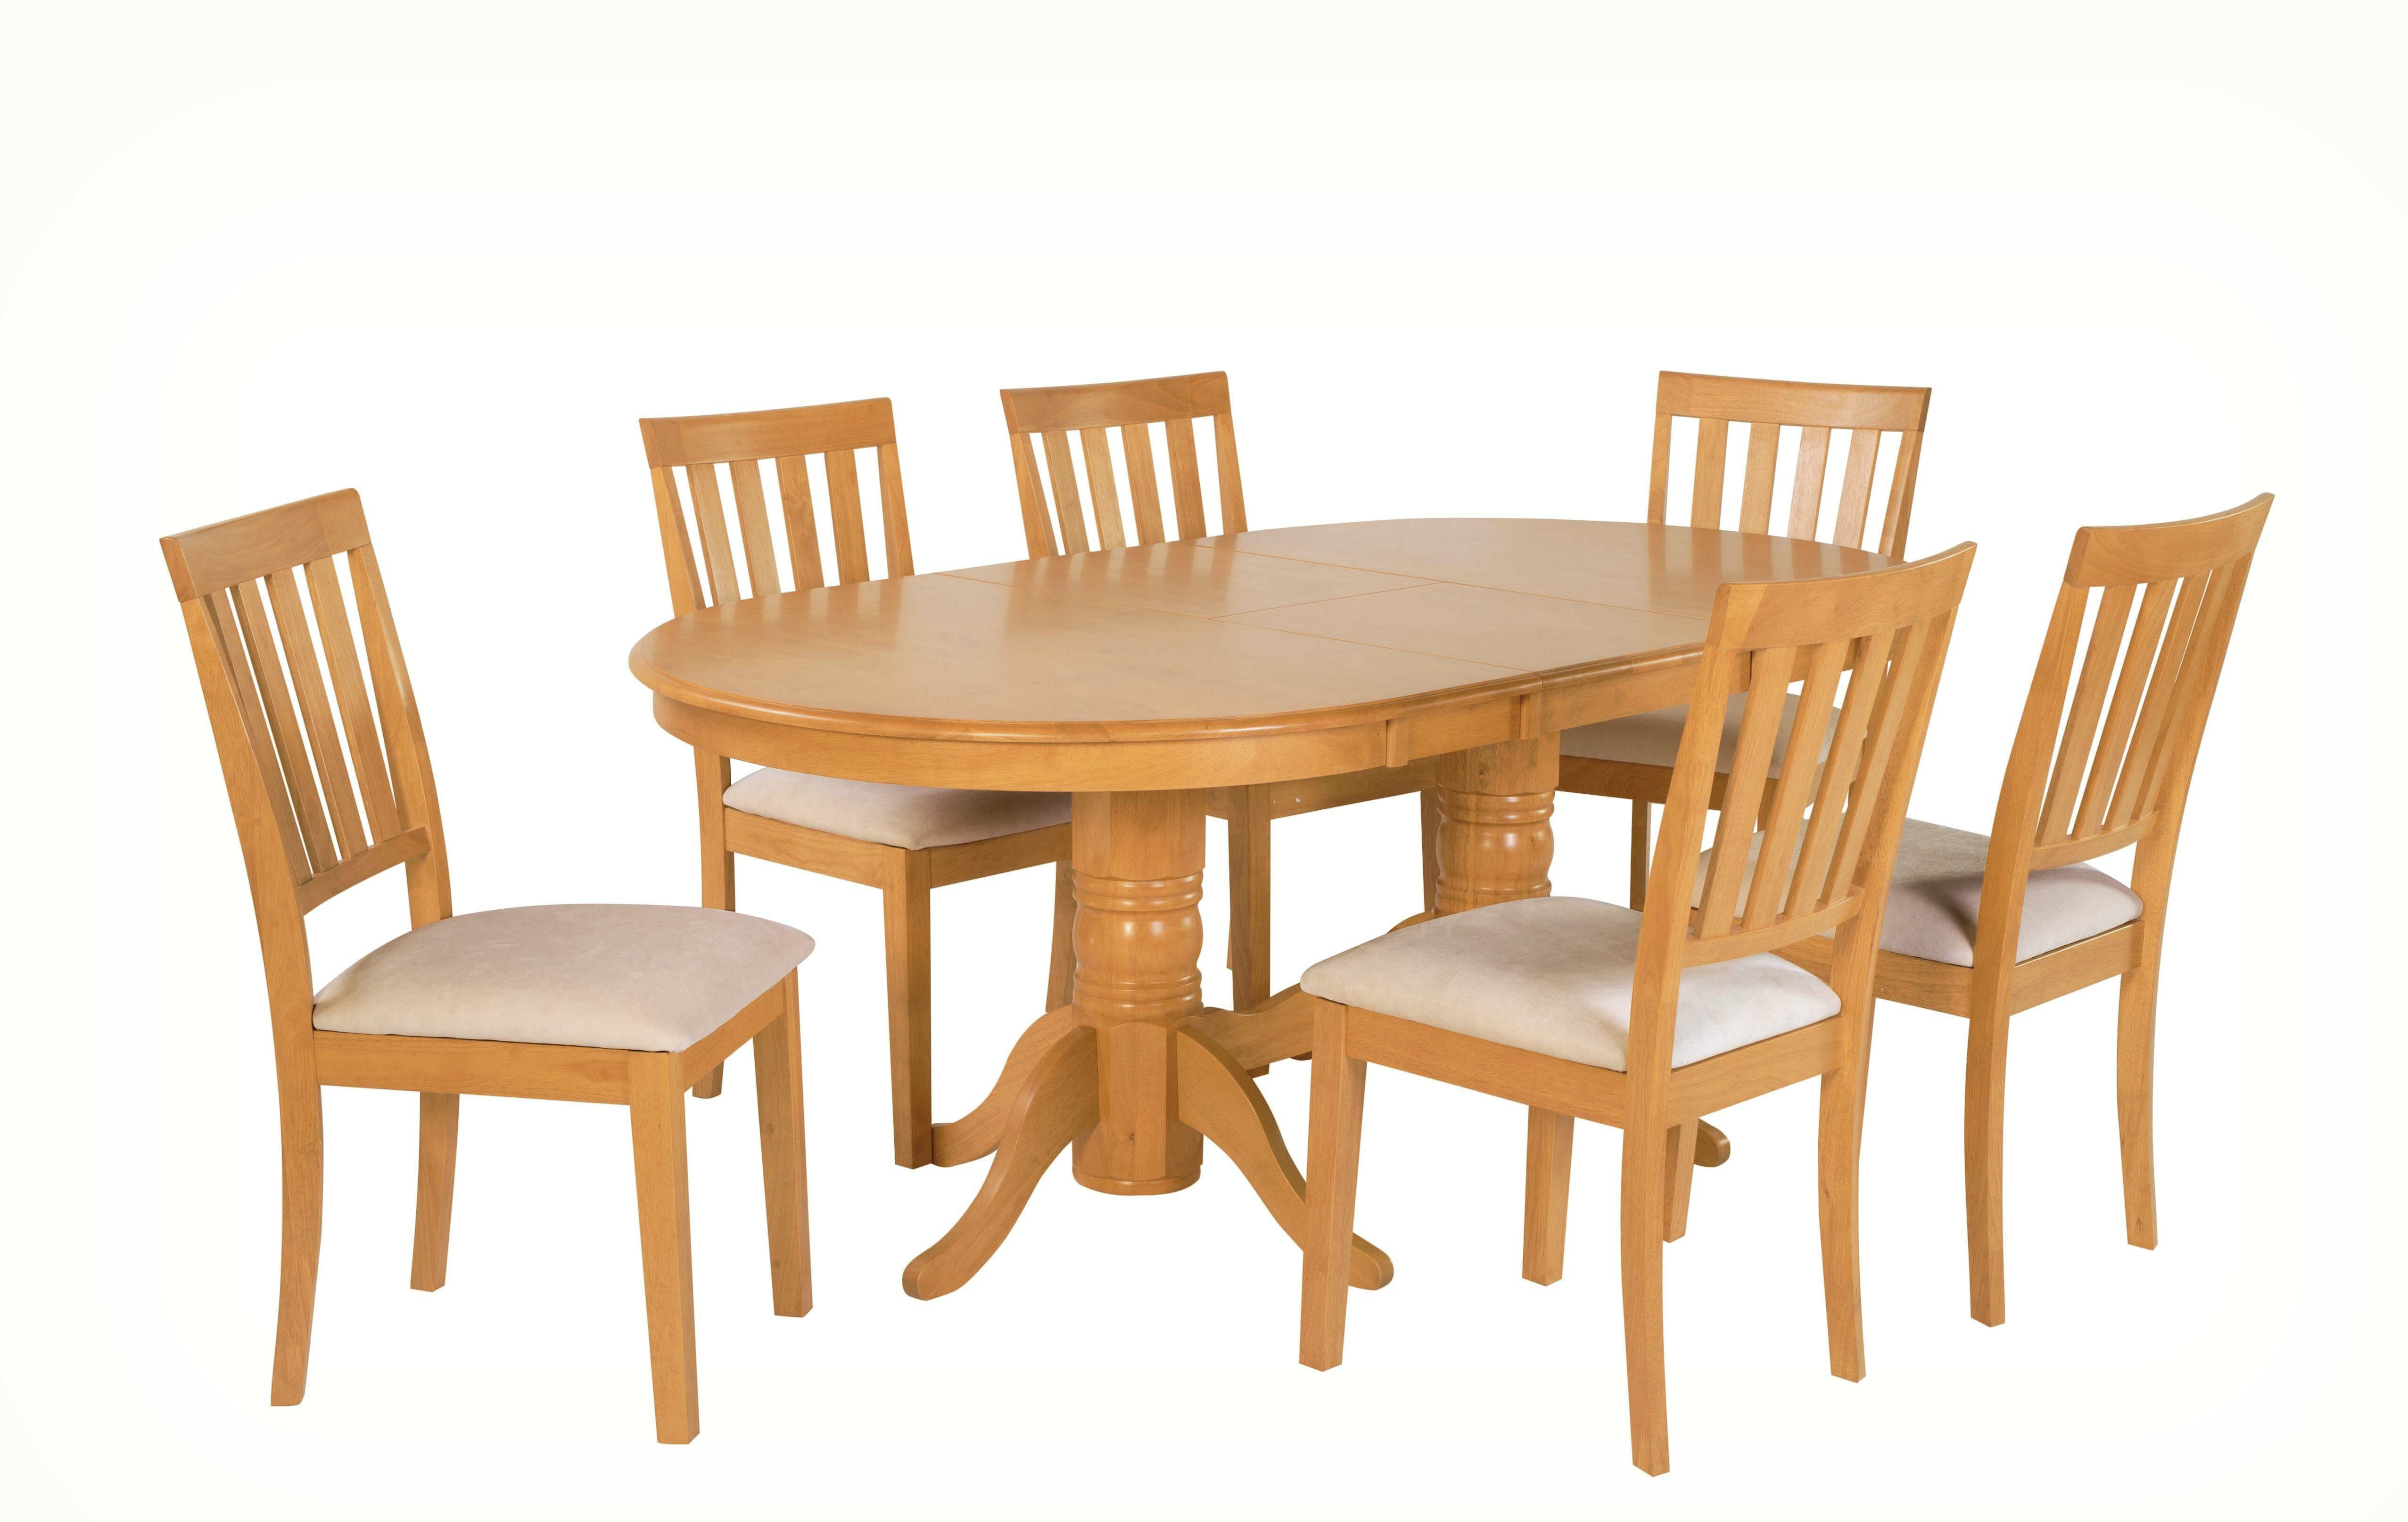 Andover mills lunde 7 piece extendable solid wood dining set wayfair